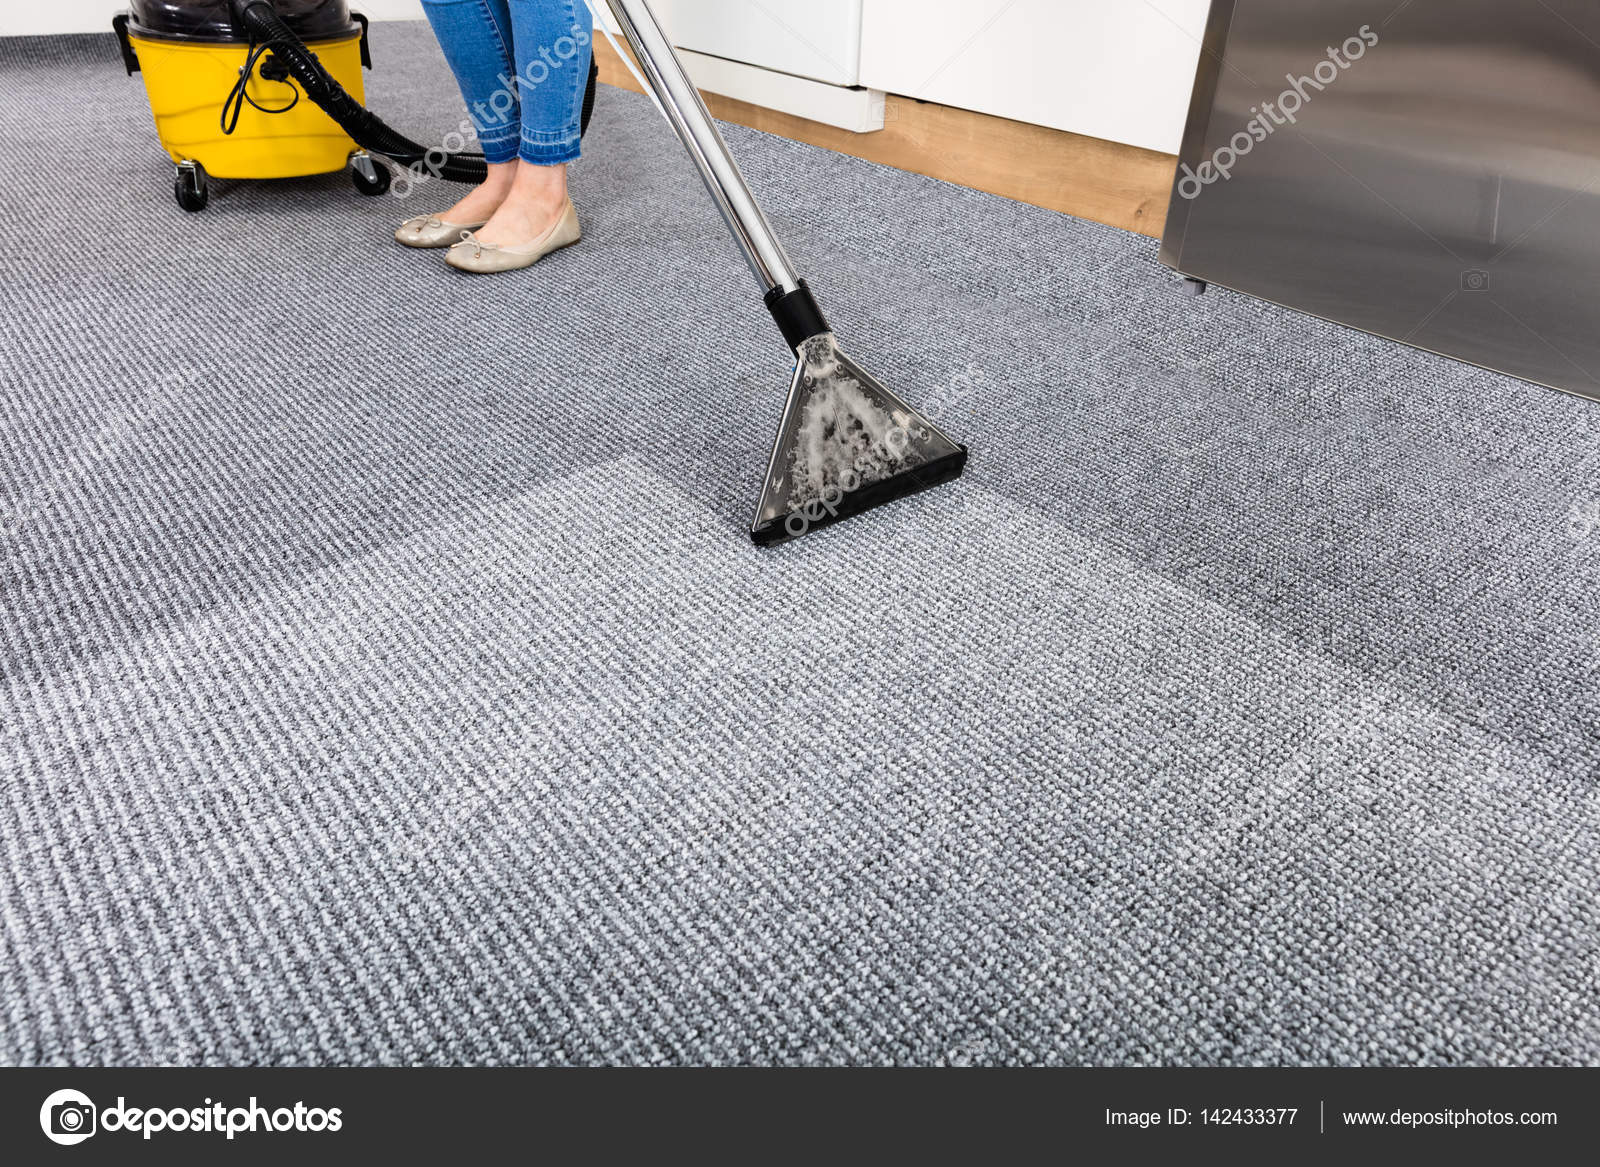 Close Up Of Woman Cleaning Carpet With Vacuum Cleaner Photo By AndreyPopov